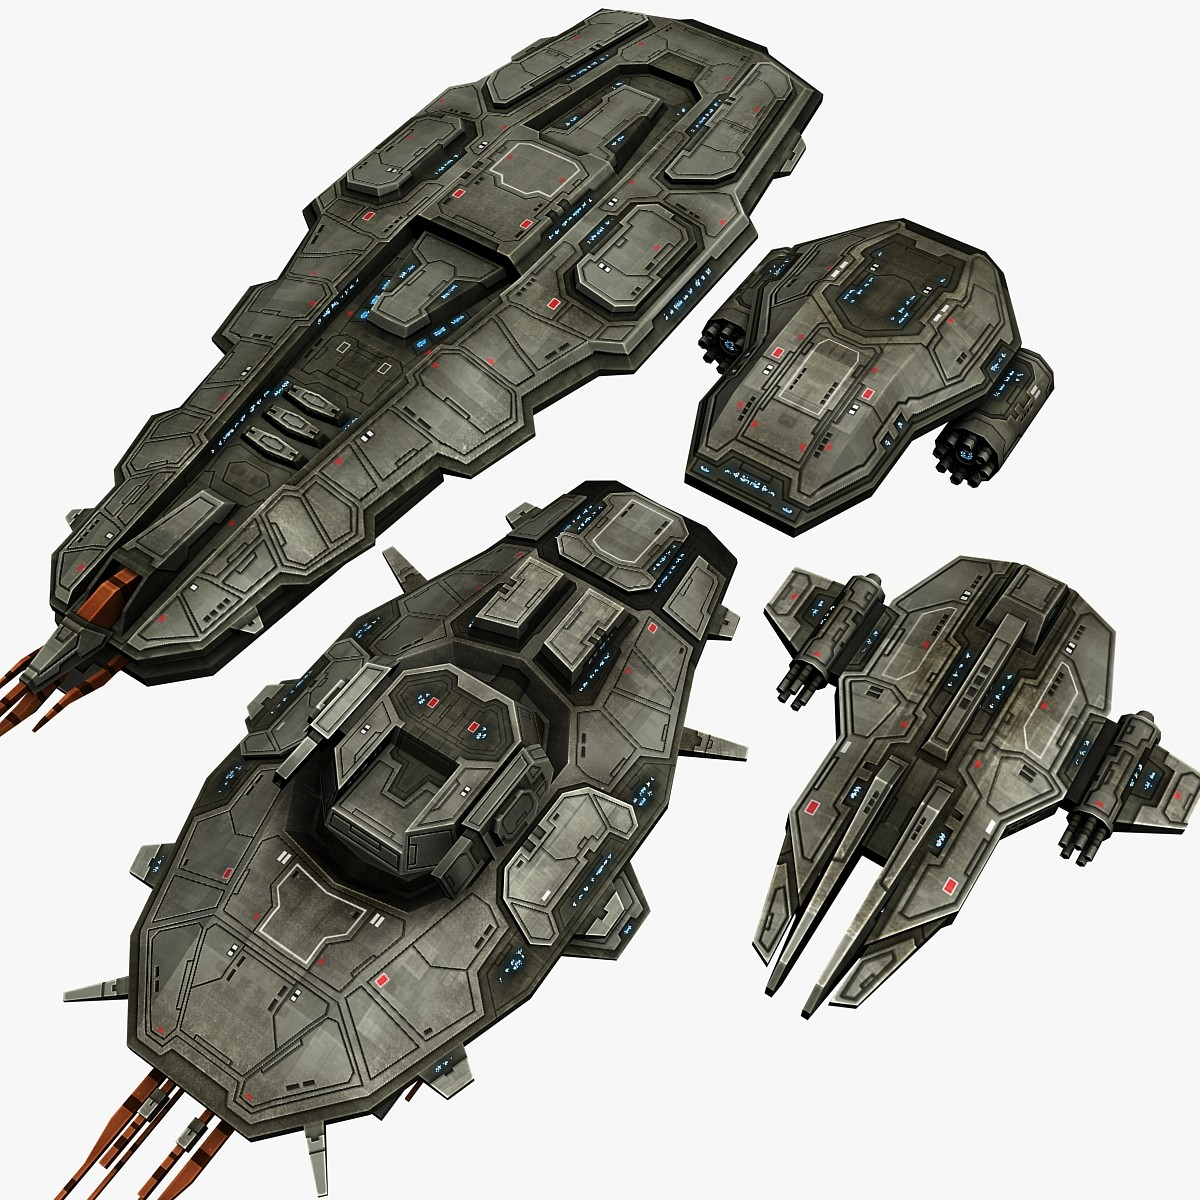 4_space_cruisers_preview_1.jpg